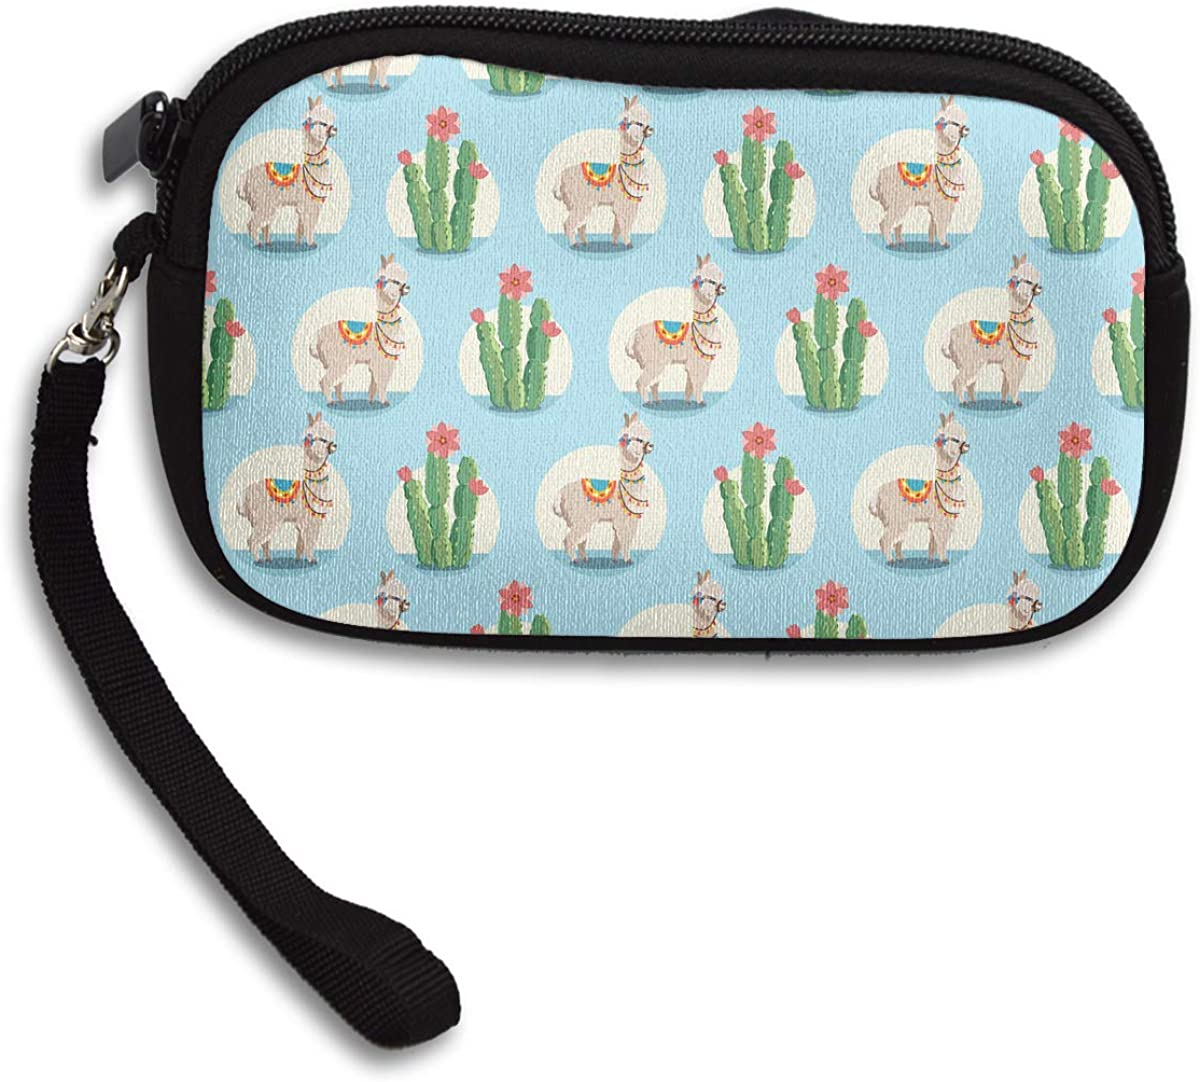 Alpaca And Cactus Plants Coin Purse Stylish Change Purse,Make Up Bag,Cellphone Bag With Handle Purses For Women